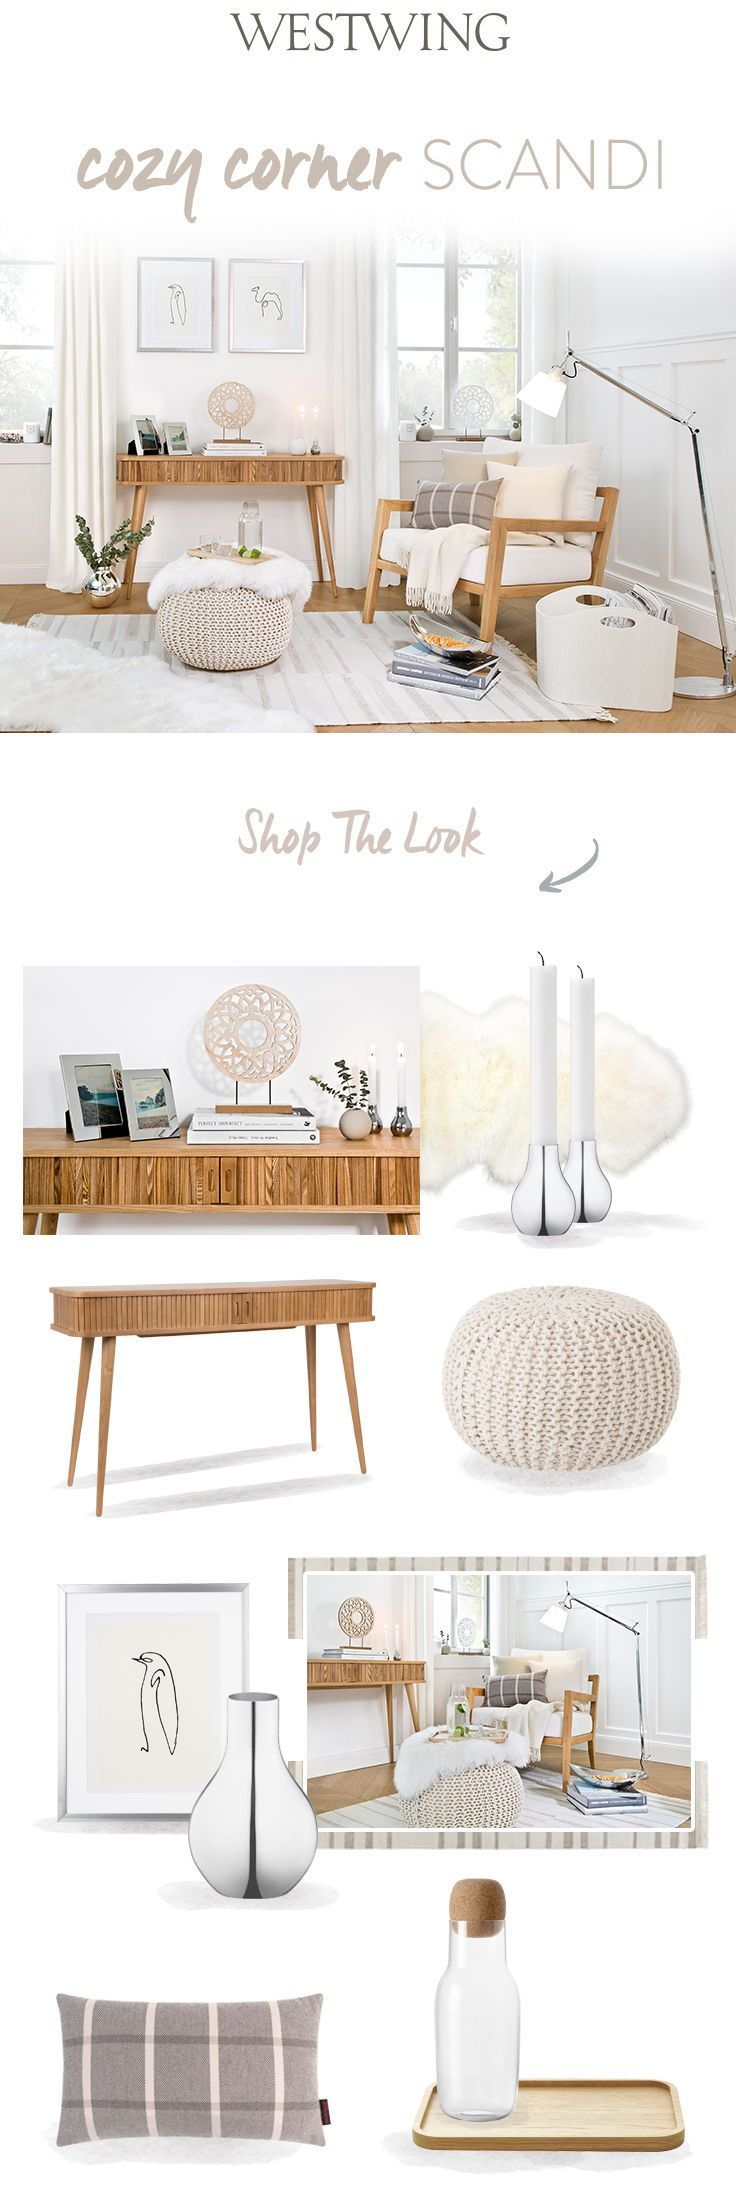 So funktioniert der Look »Cozy Corner Skandi«: Ein Hoch ...